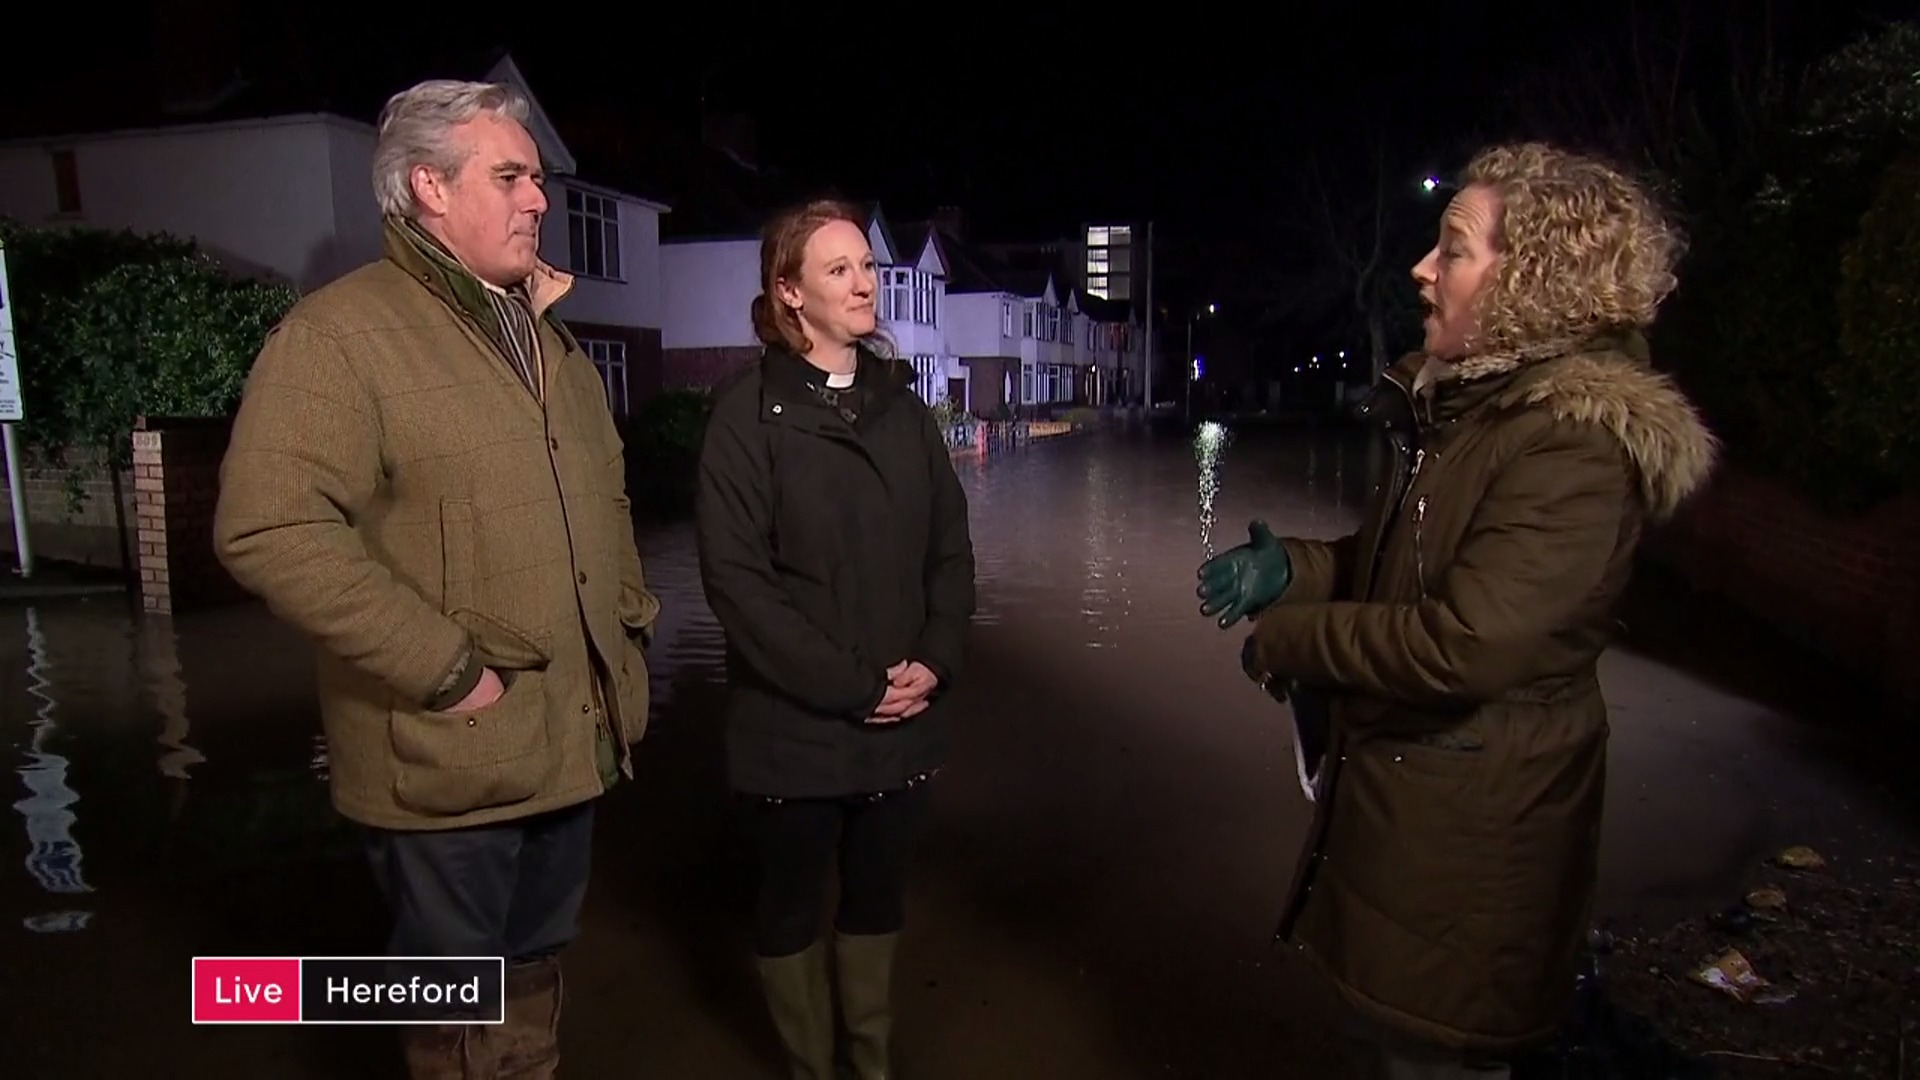 Johnson visit to flood-hit areas 'wouldn't help' – Tory MP Mark Garnier - channel 4